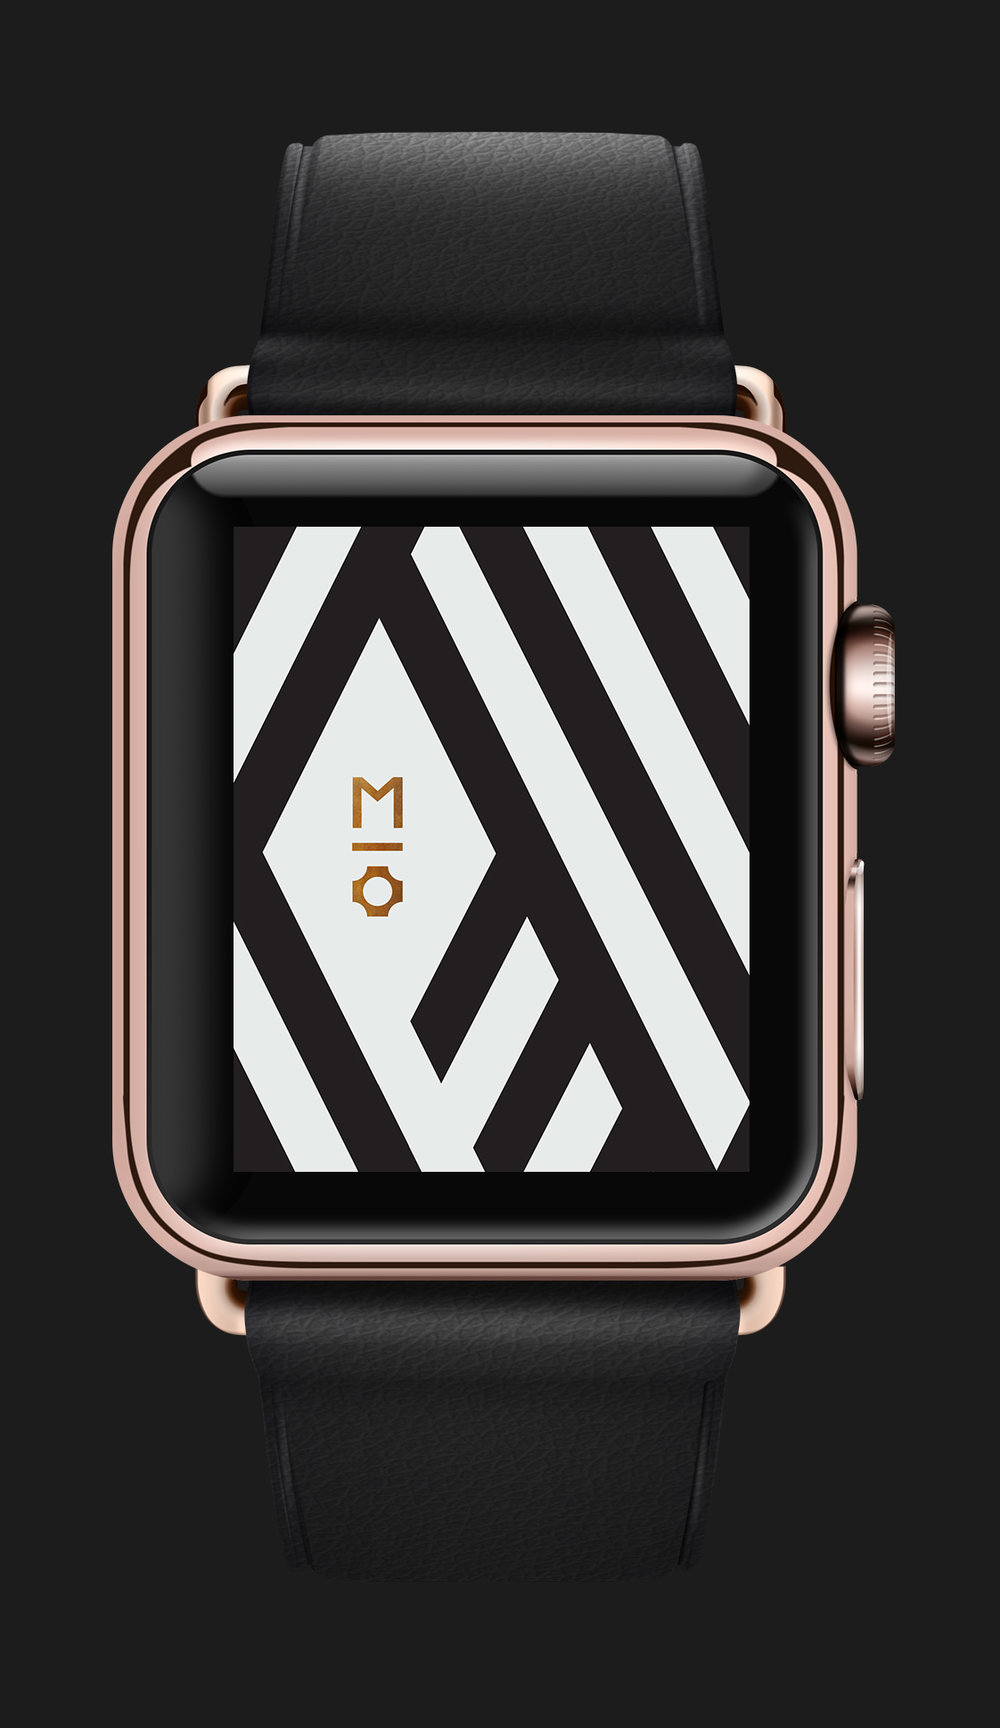 the-mark-apple-watch.jpg